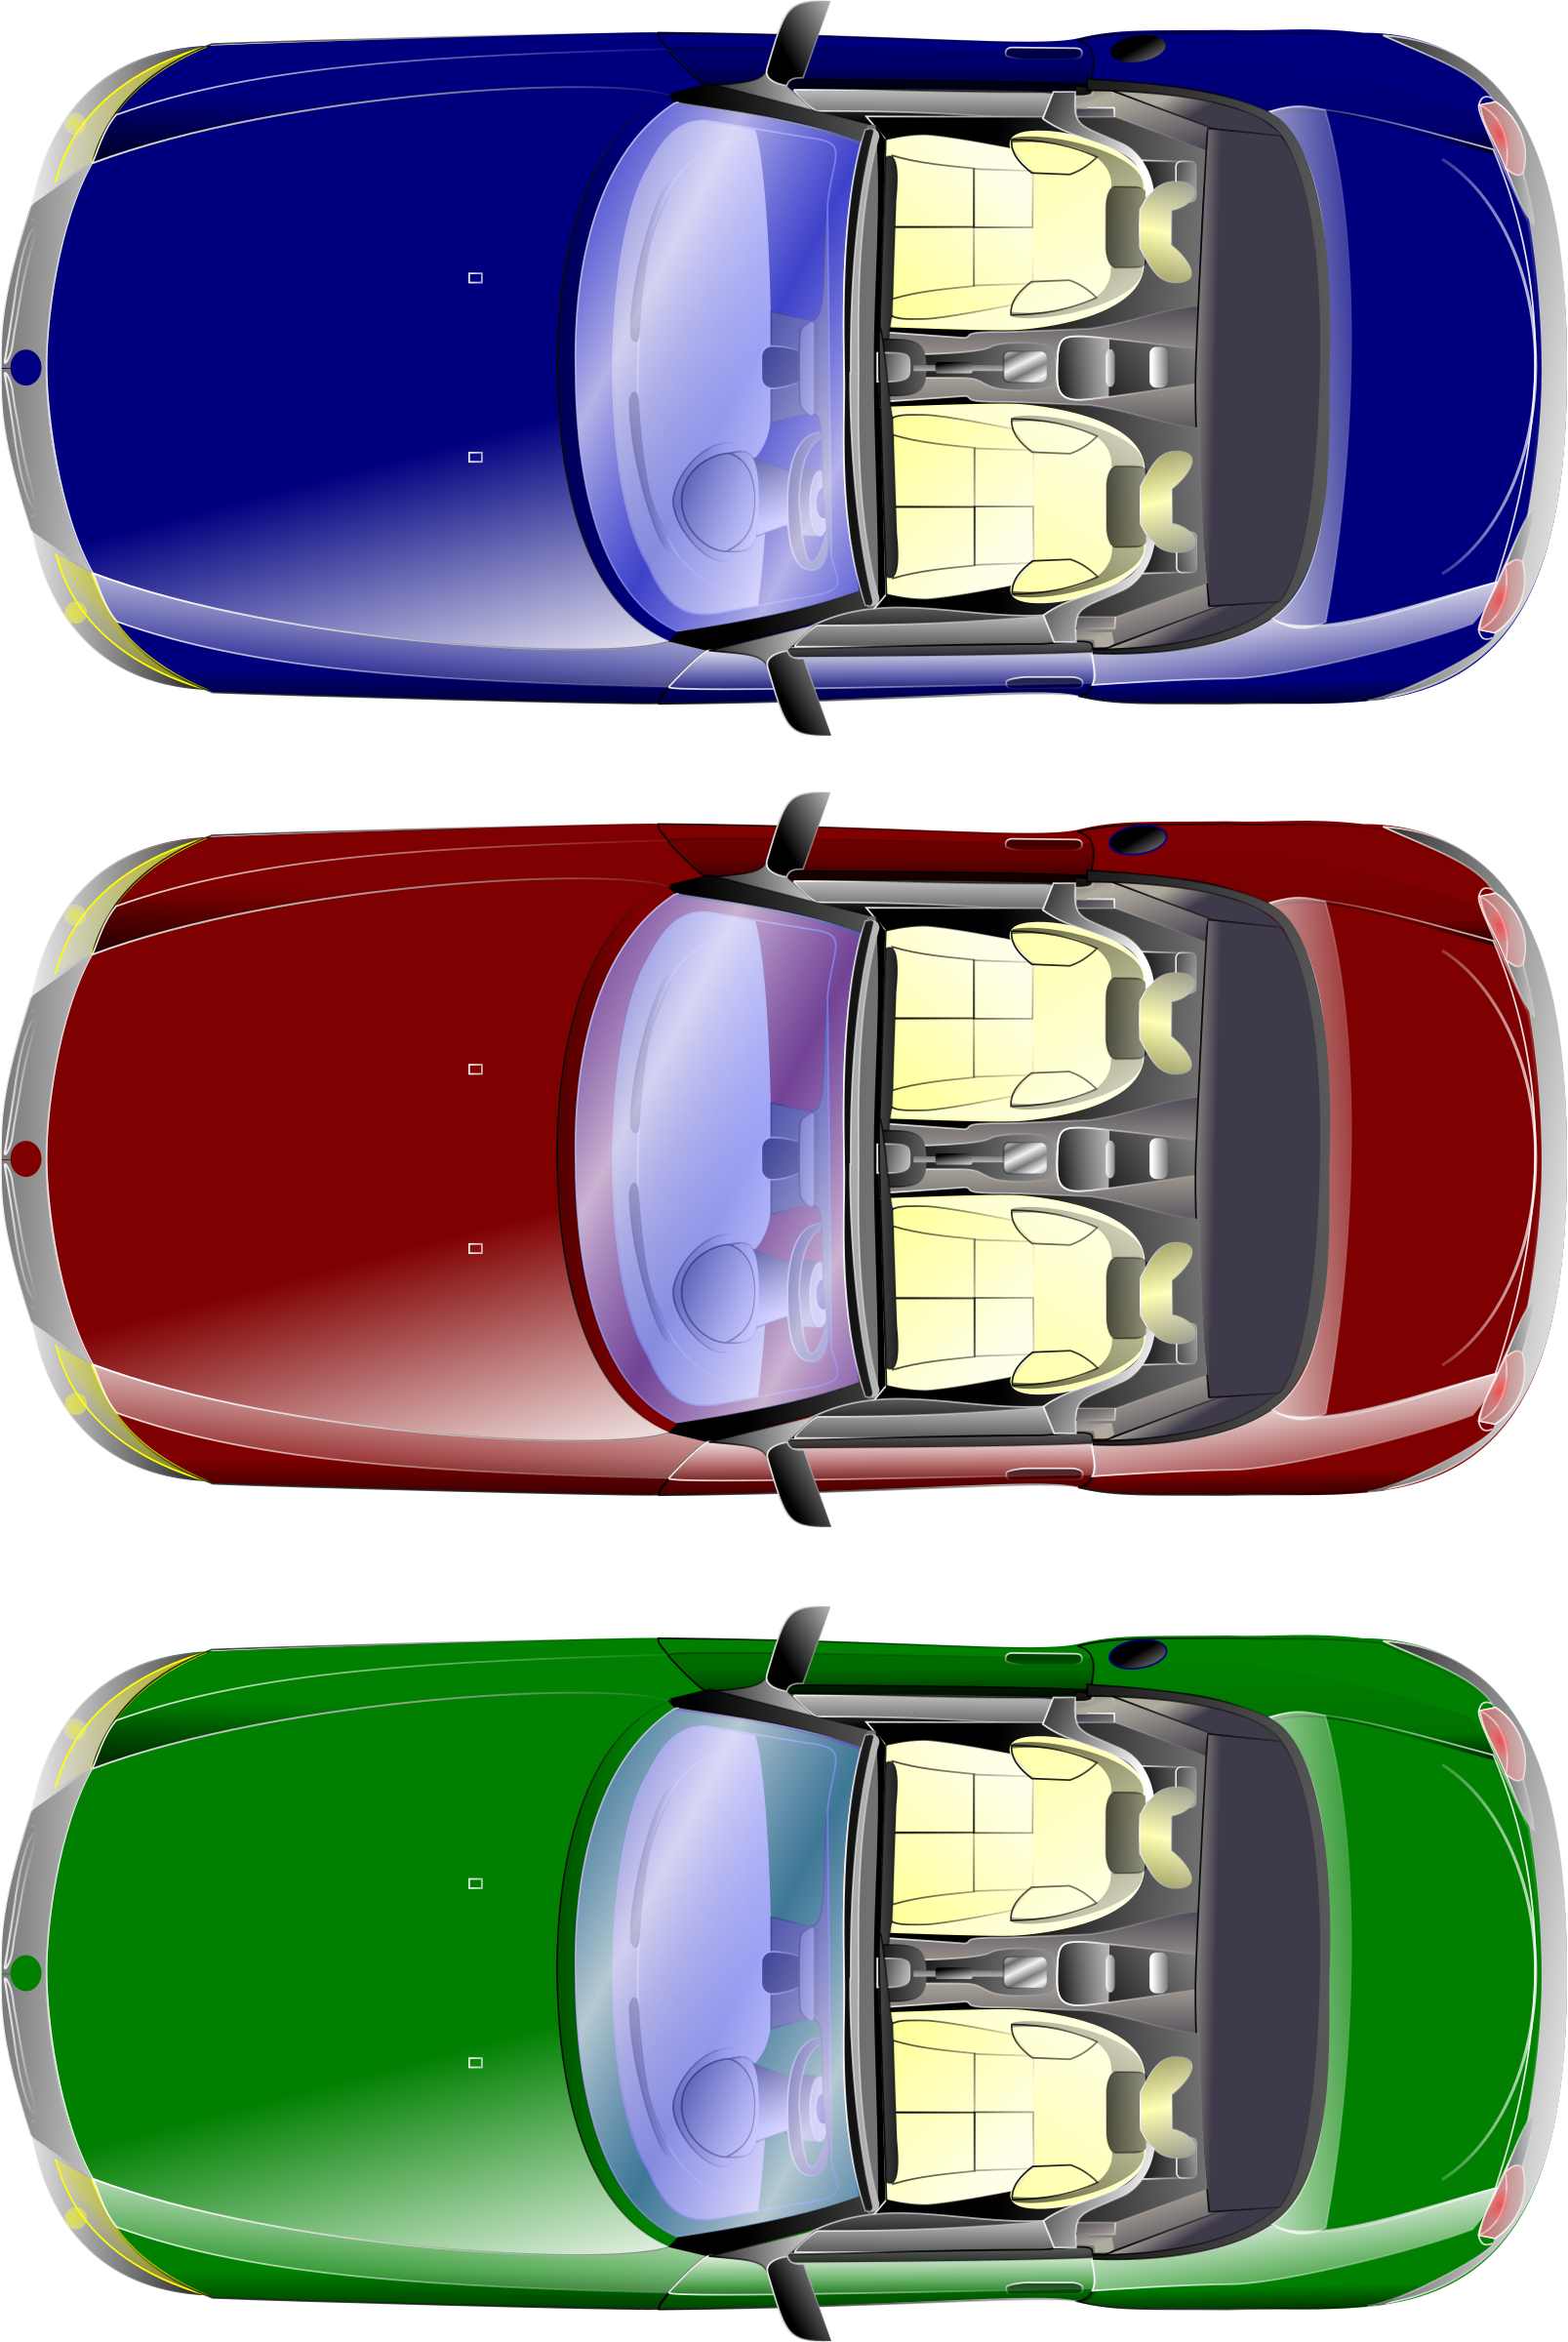 car top view by obi